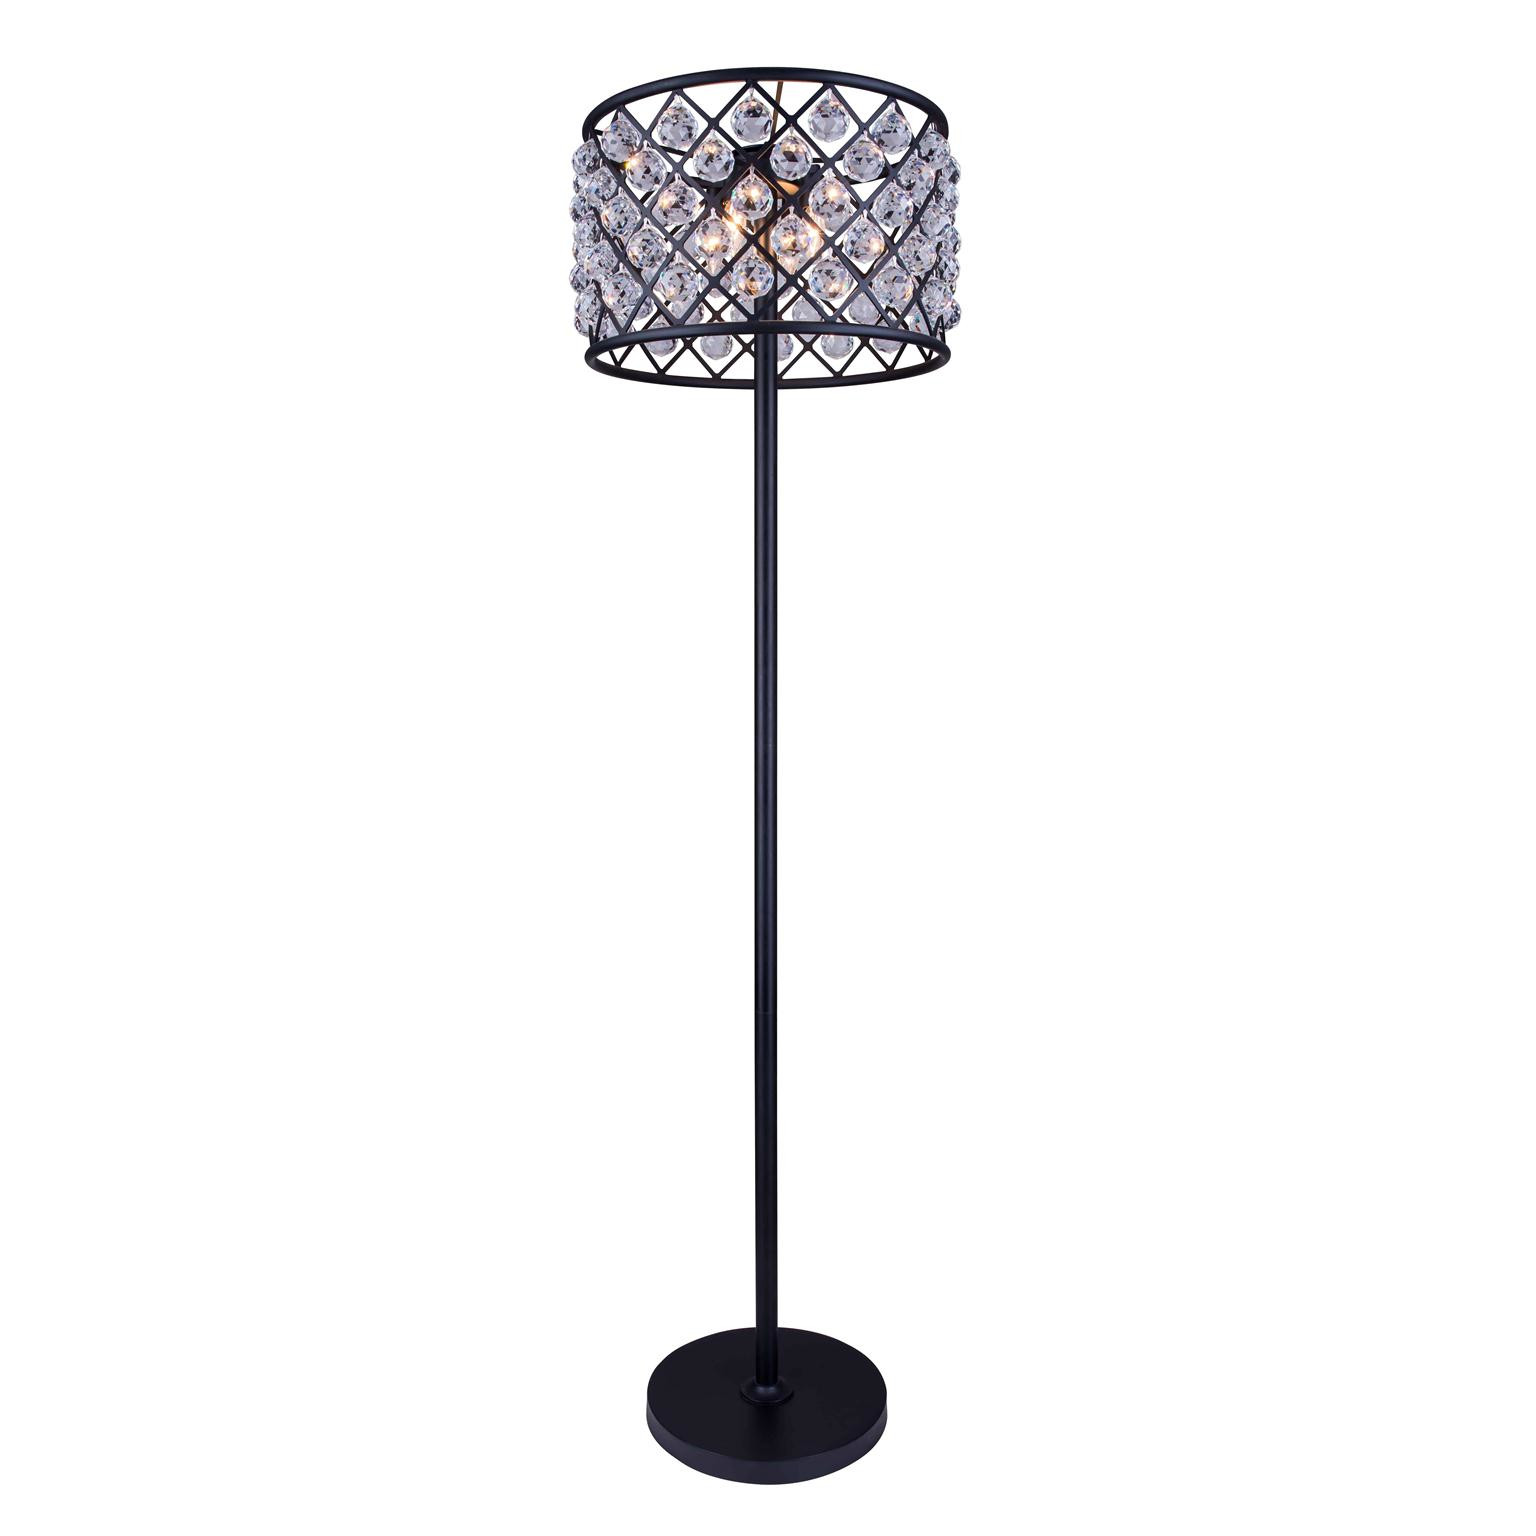 72 floor lamp photo - 1